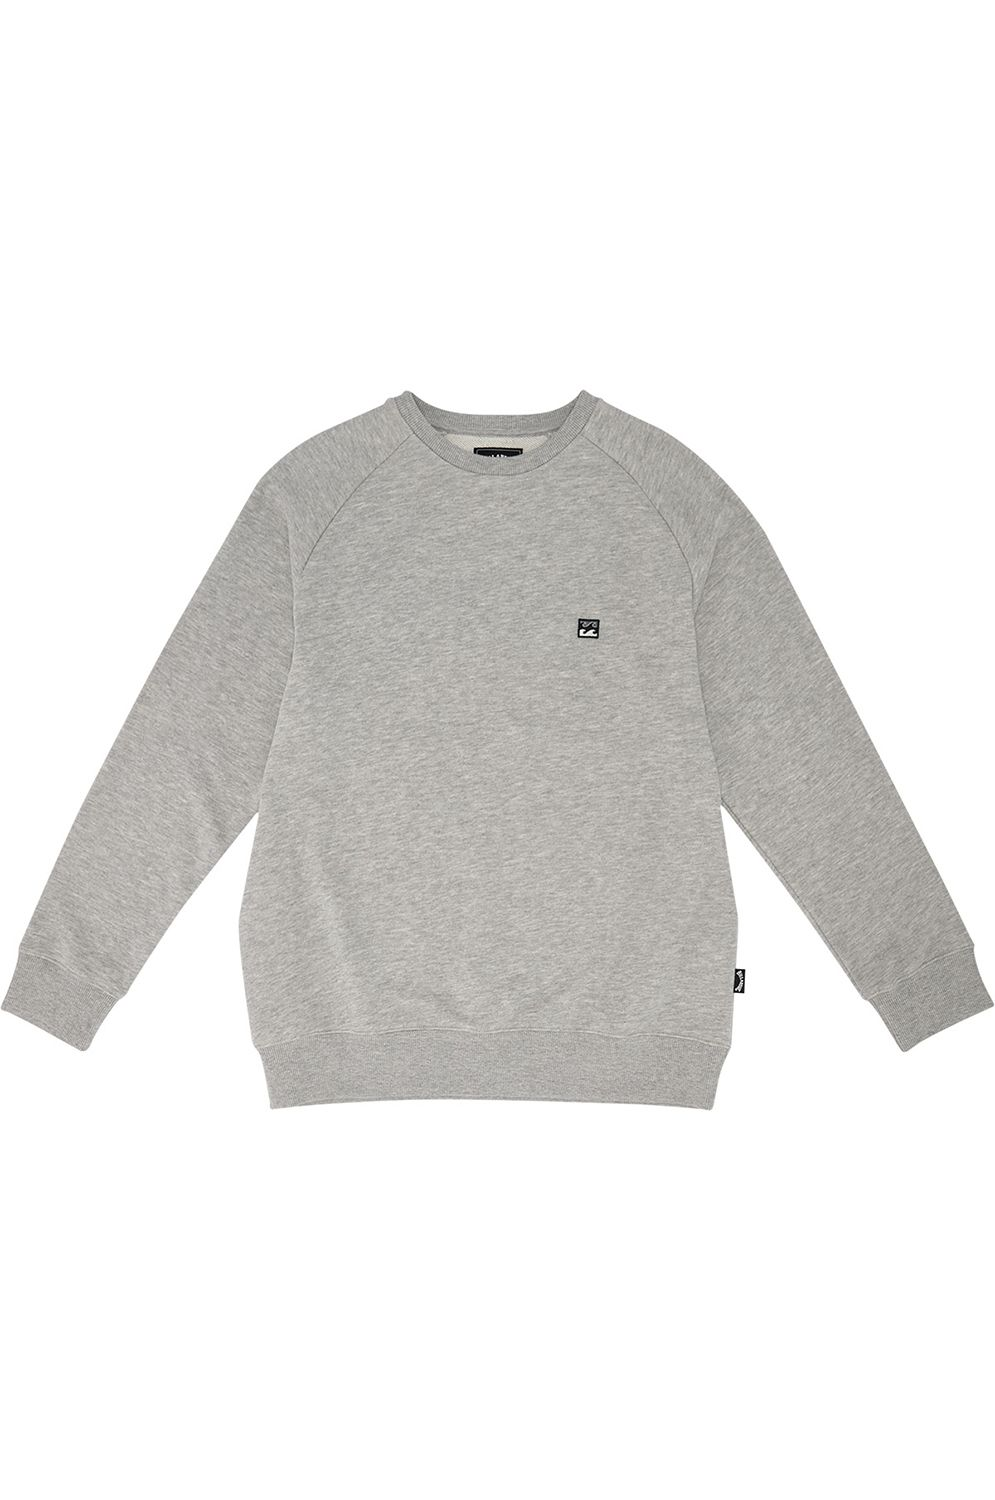 Billabong Crew Sweat ORIGINAL Grey Heather